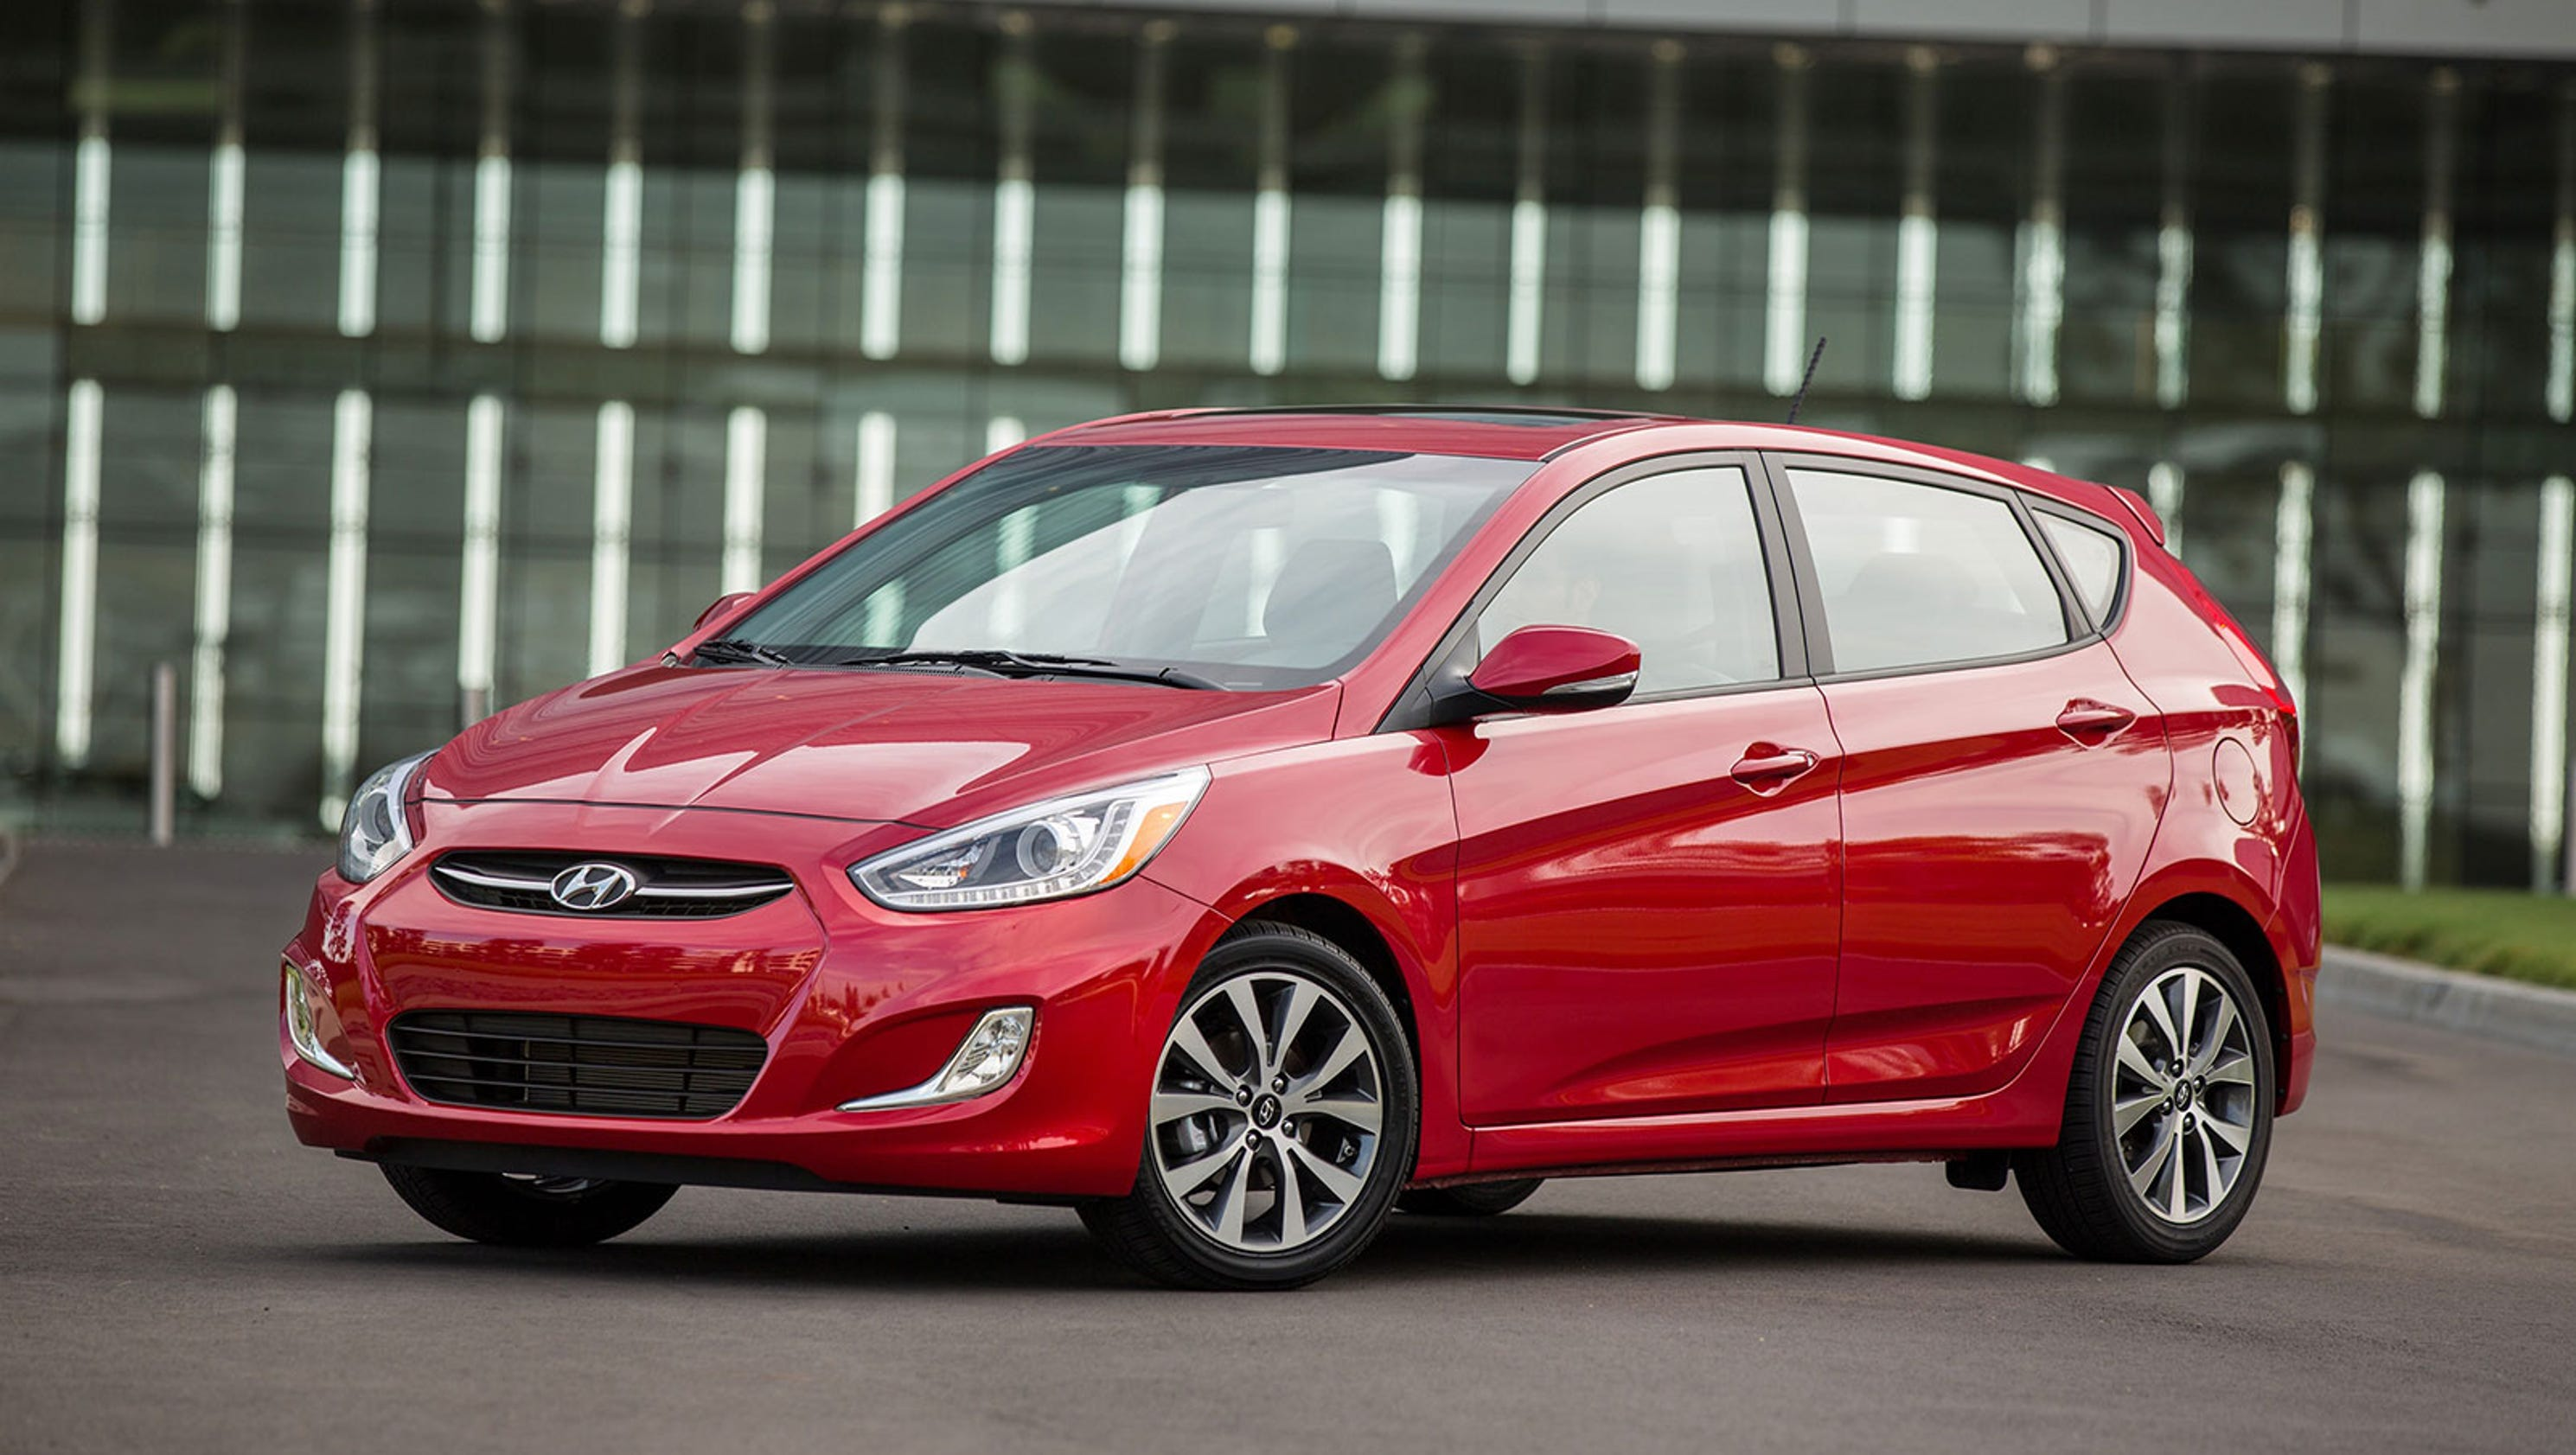 ie carsireland news hyundai review reviews